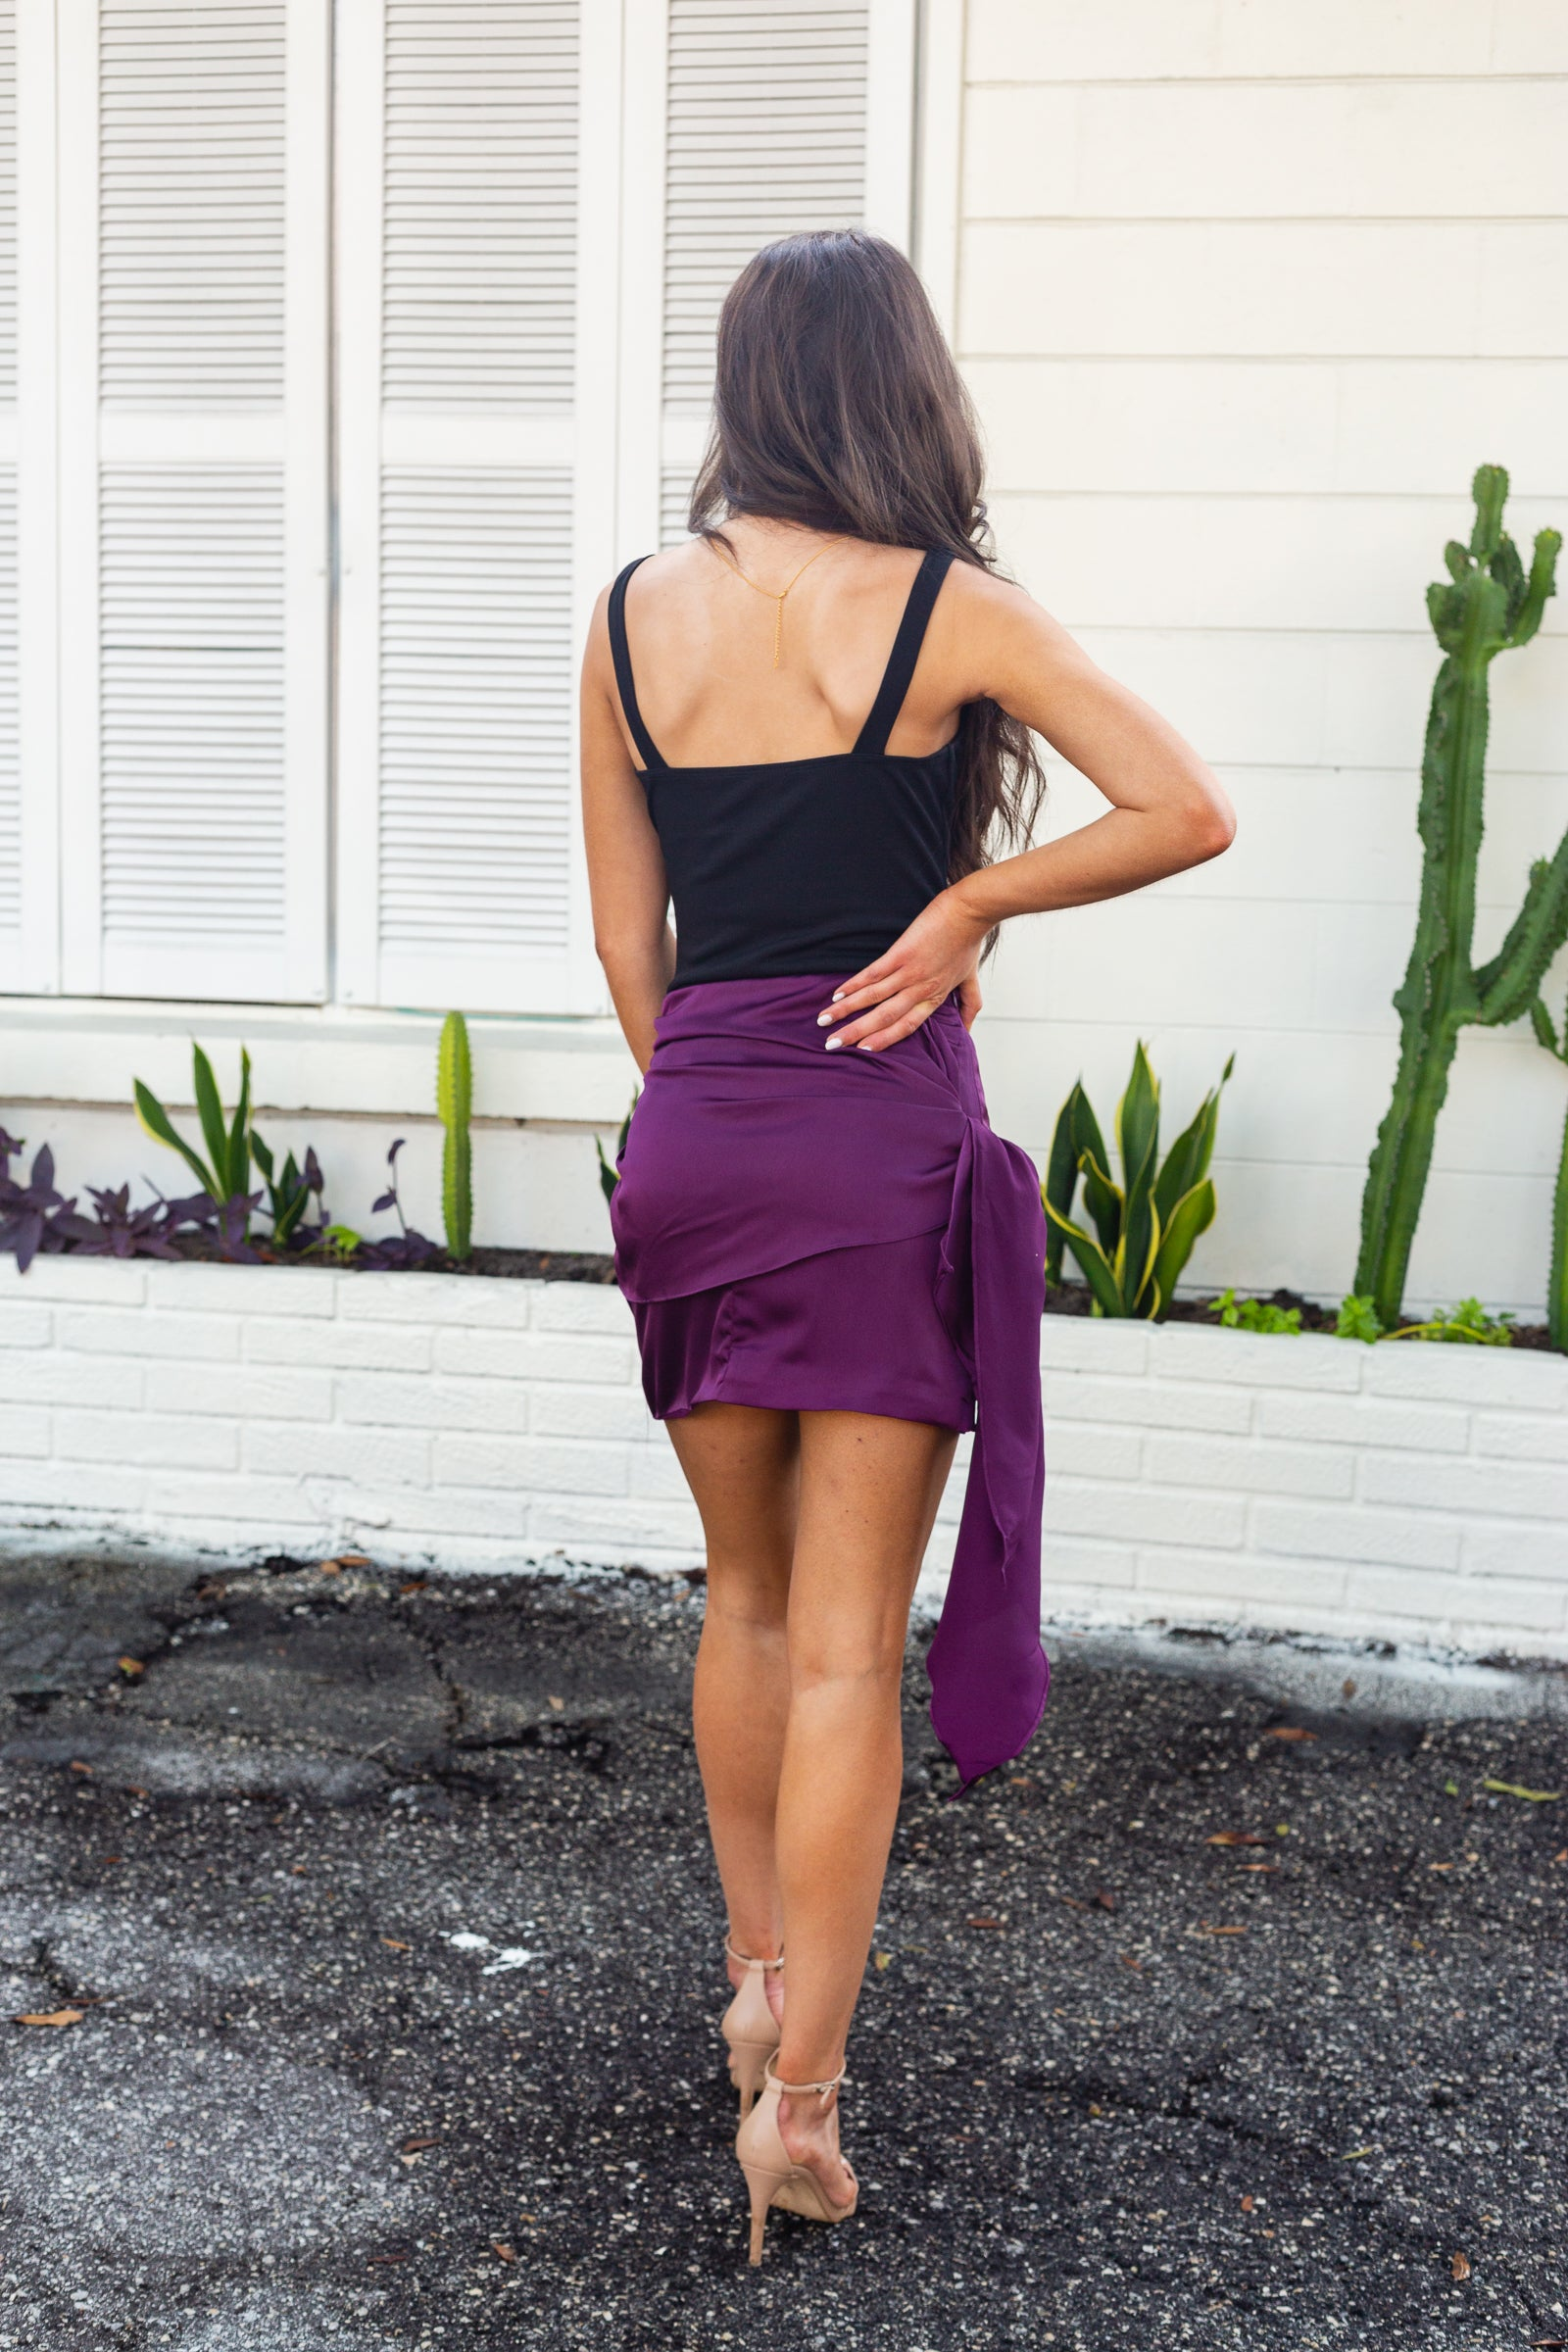 This adorable skirt has a fitted waistband and goes down into a side-tied drape with a ruched side detail on the opposite side. This drape sits atop a simple straight mini skirt silhouette.